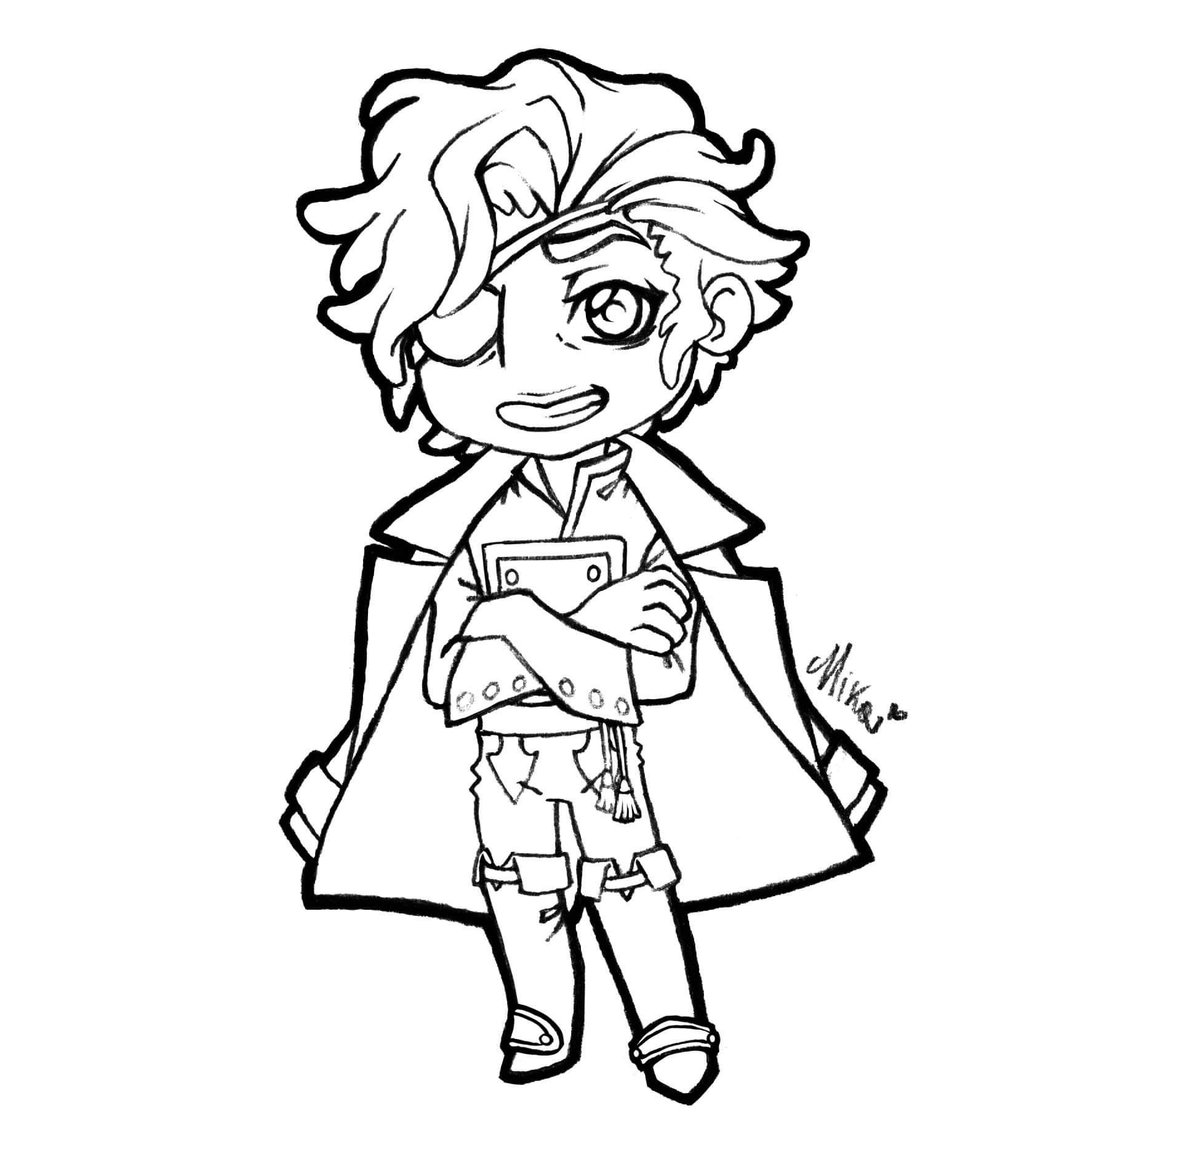 So, here's finally the complete lineart of my  chibi Julian Devorak fanart! So precious, my slippery boy#art  #artist #artsy #illustration  #draw #drawings #lineart #chibi #julian #juliandevorak #jules #julesdevorak #thearcanagame #thearcanailya #thearcanajulian #ilyadevorakpic.twitter.com/vRRu2UoJMO